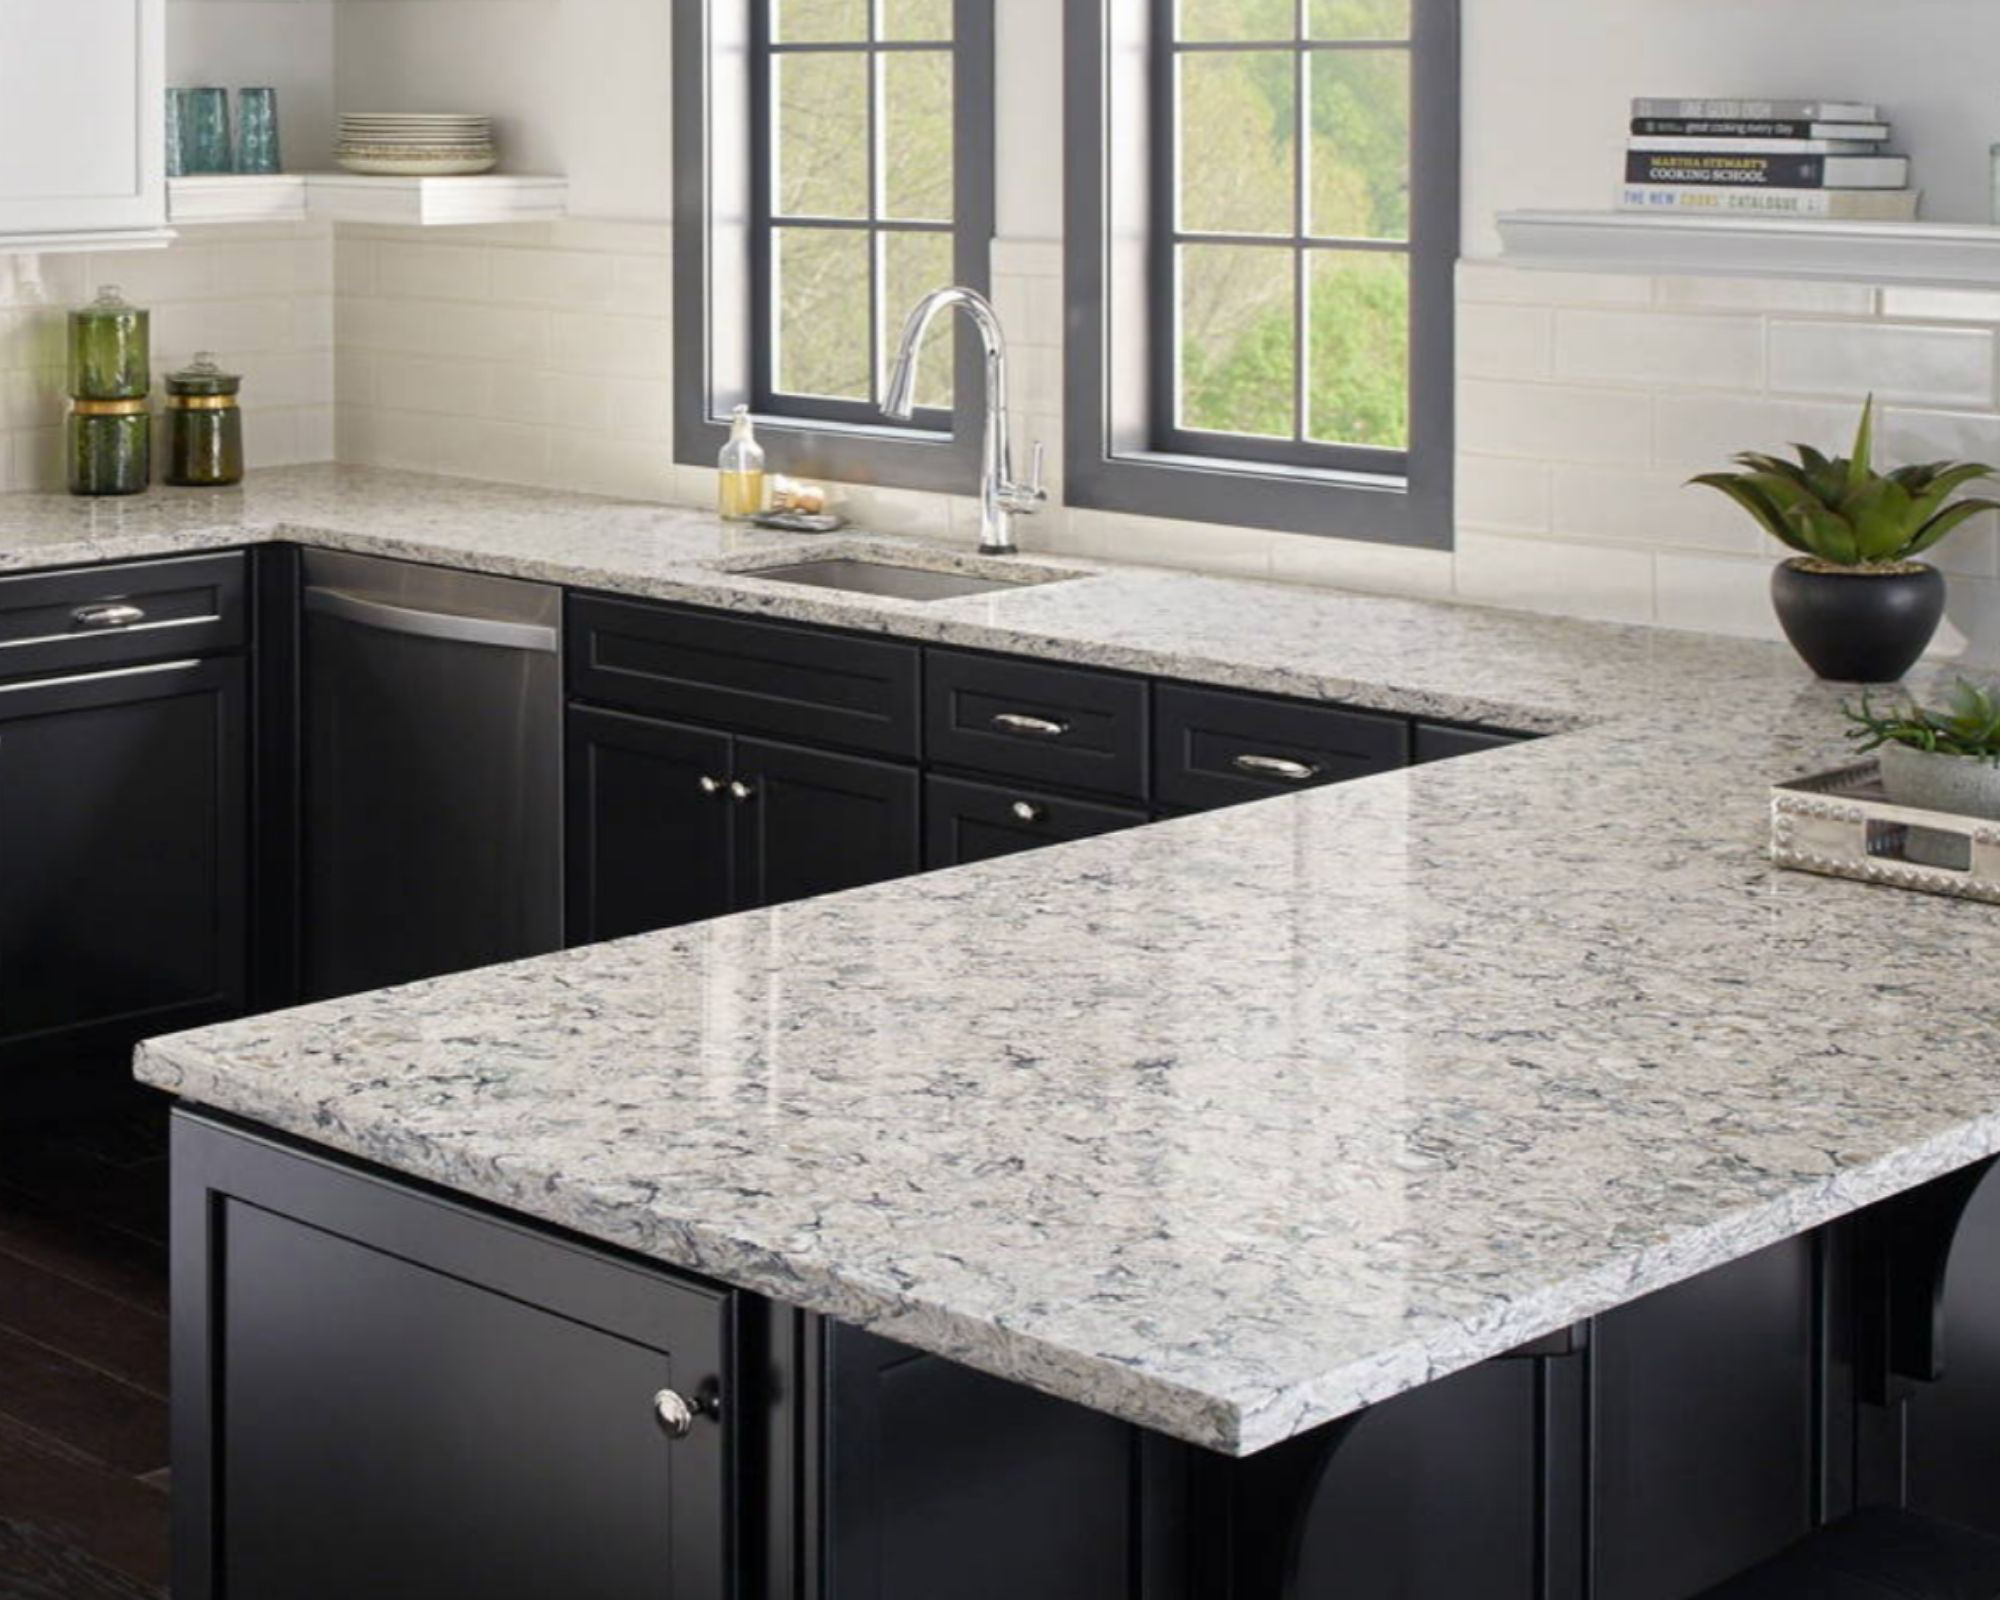 Why Quartz Countertops Might Be Your Most Carefree Countertop